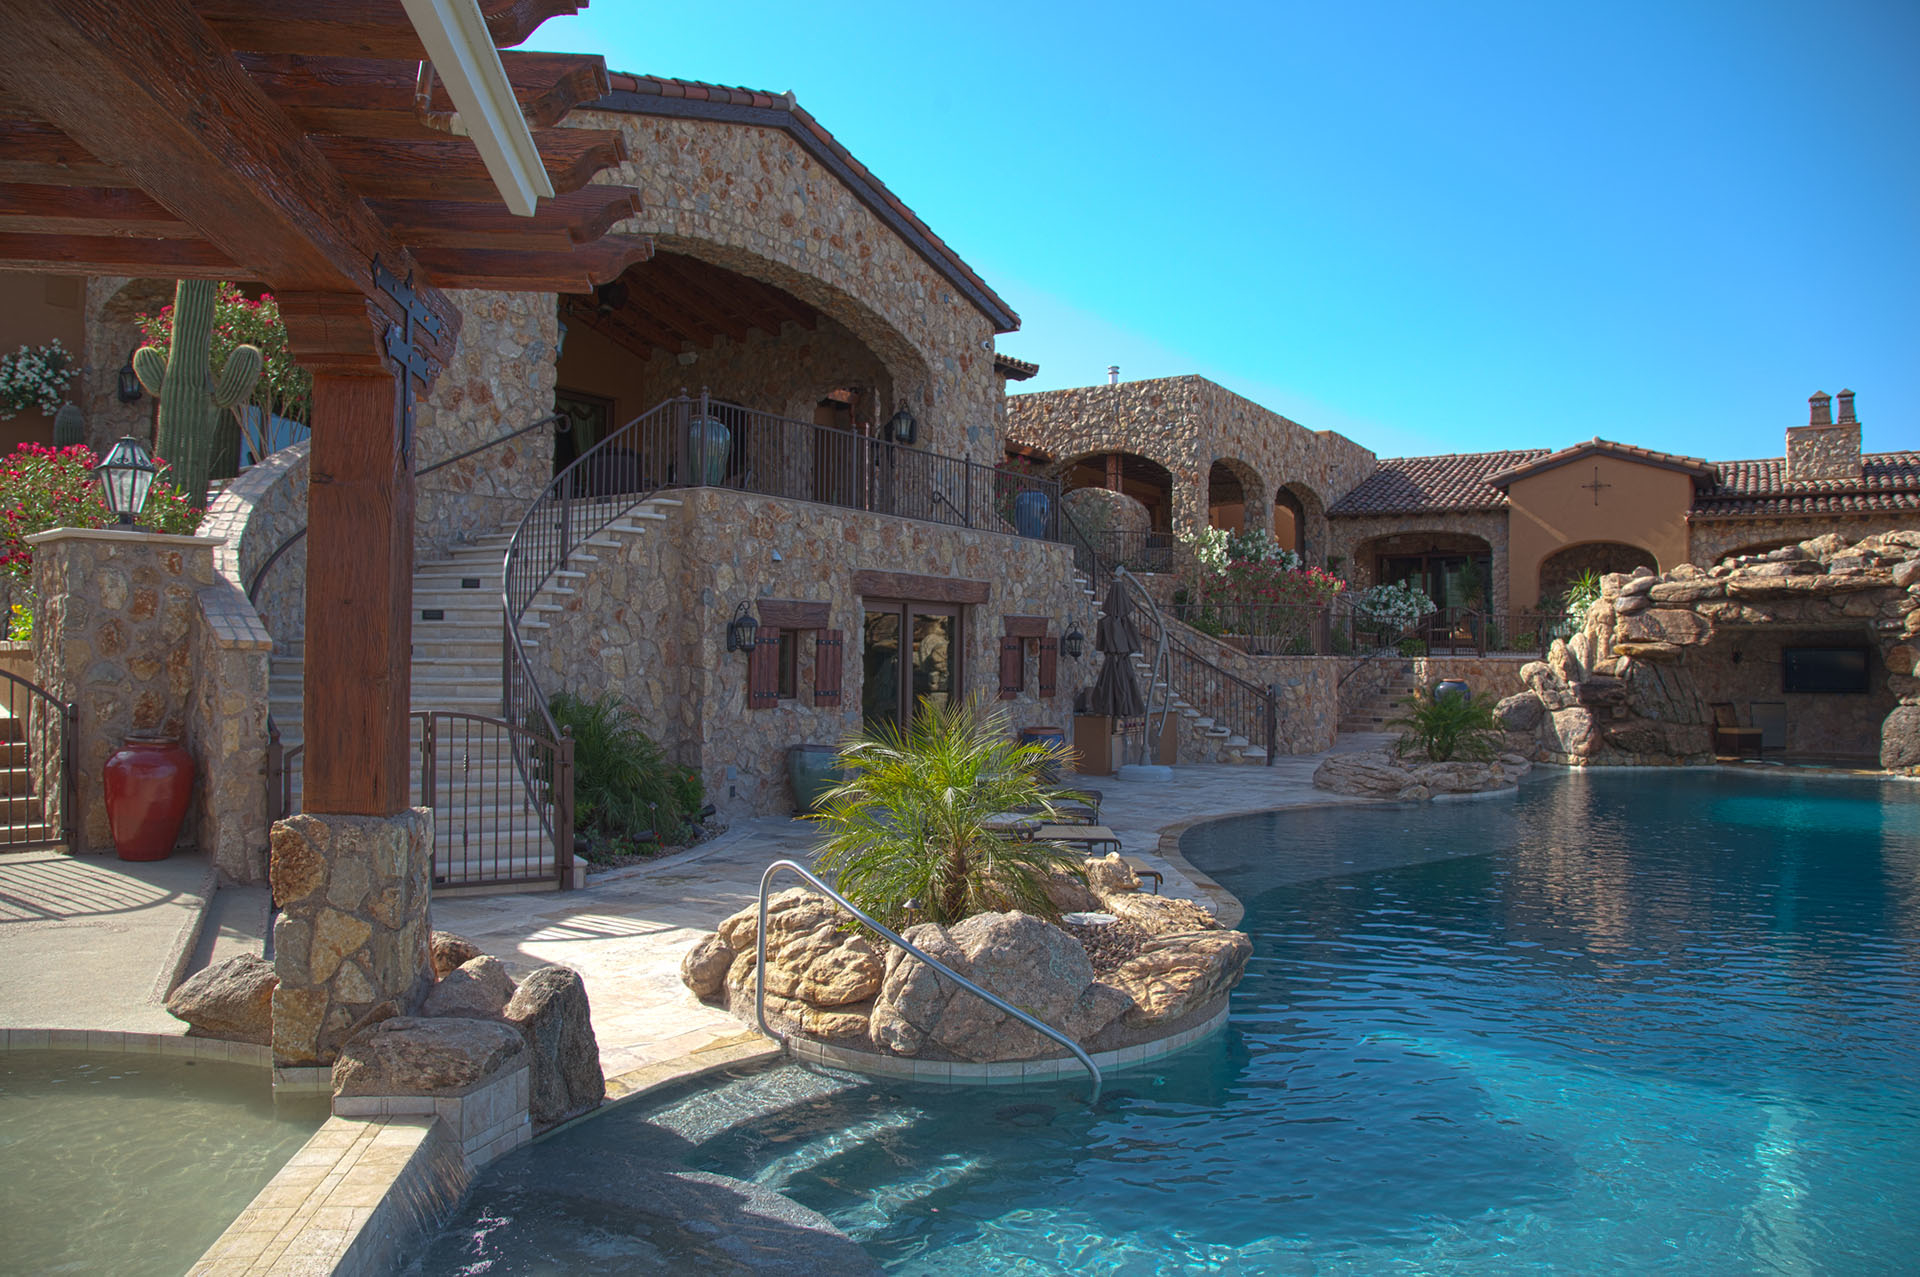 No limit pools spas in mesa az 602 421 9 for Pool fill in mesa az